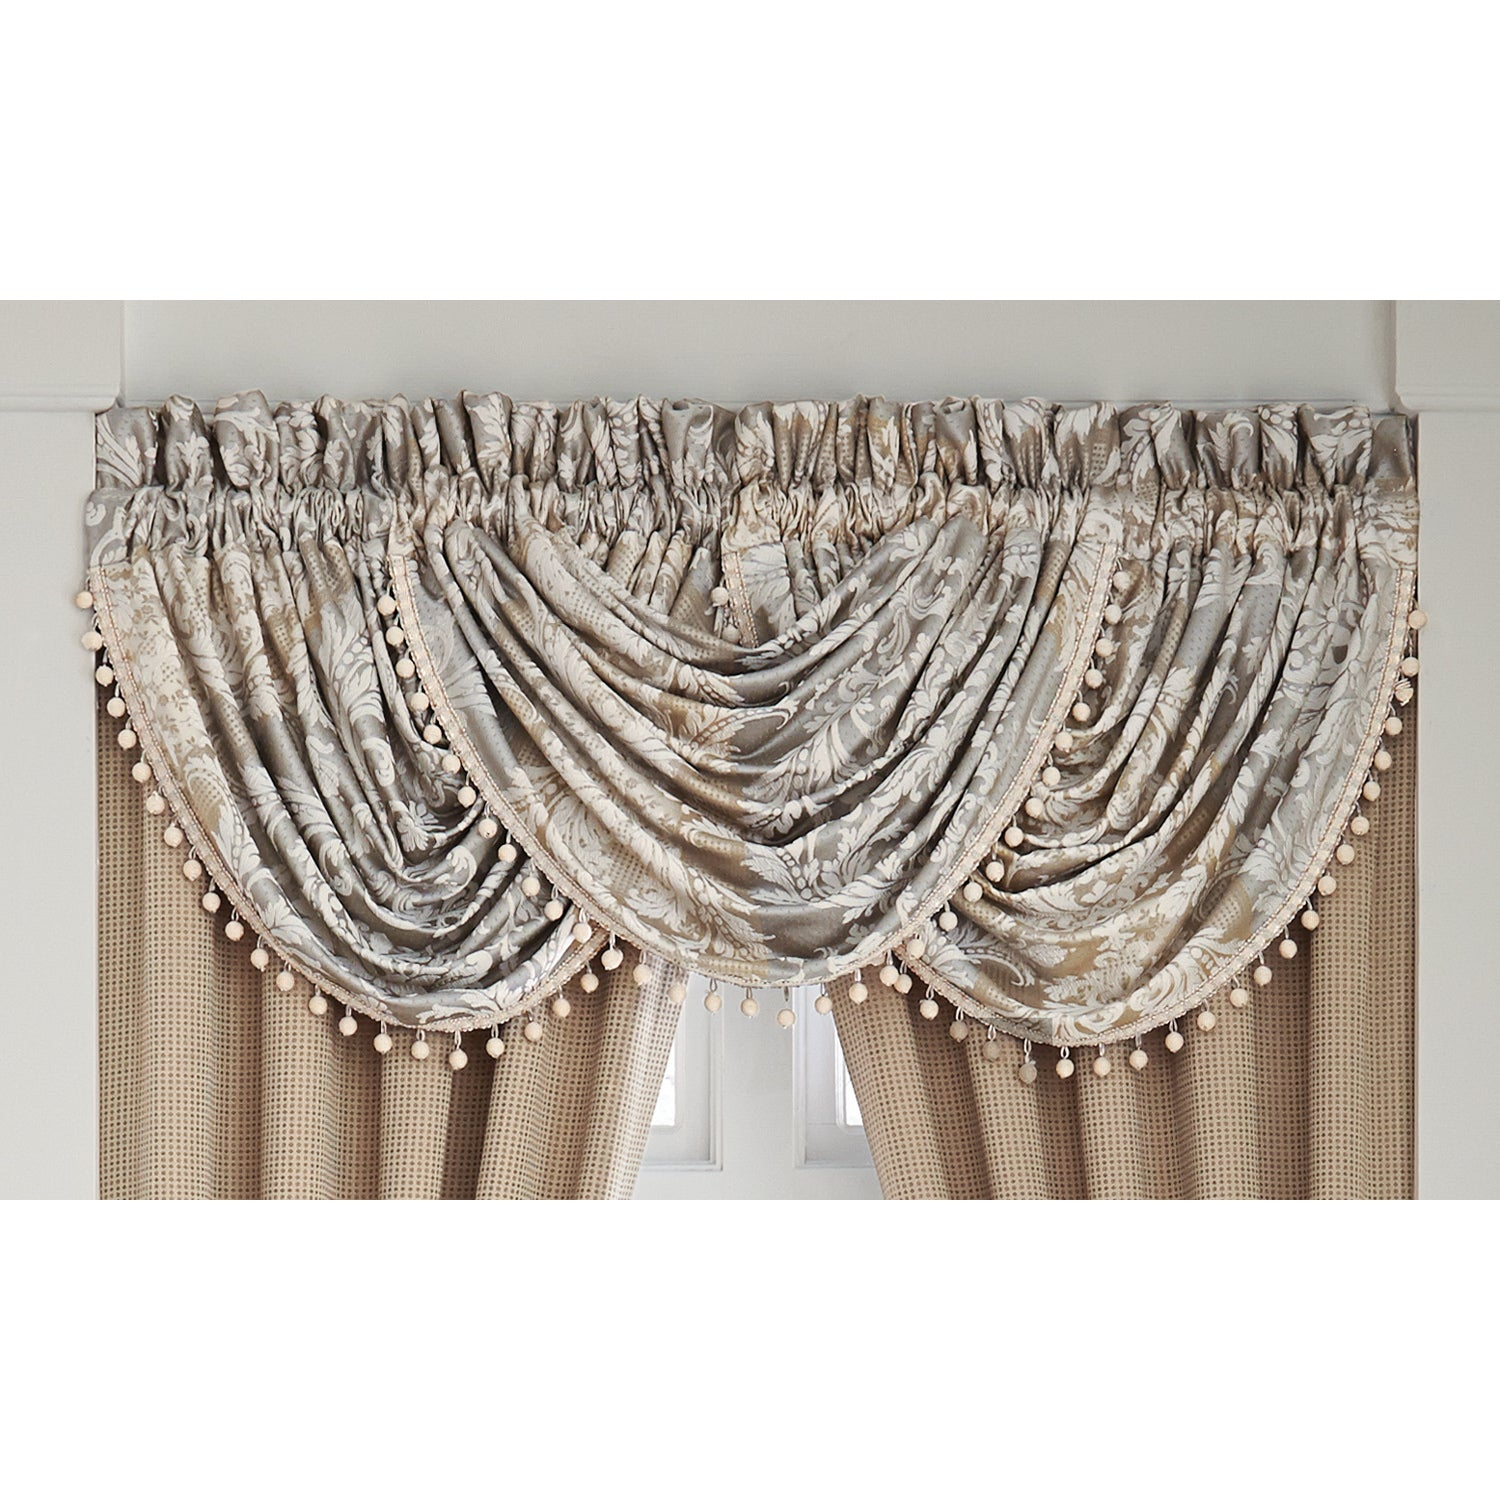 with of curtains window valance how valances decorate hang sebastian beaded waterfall designs your to image